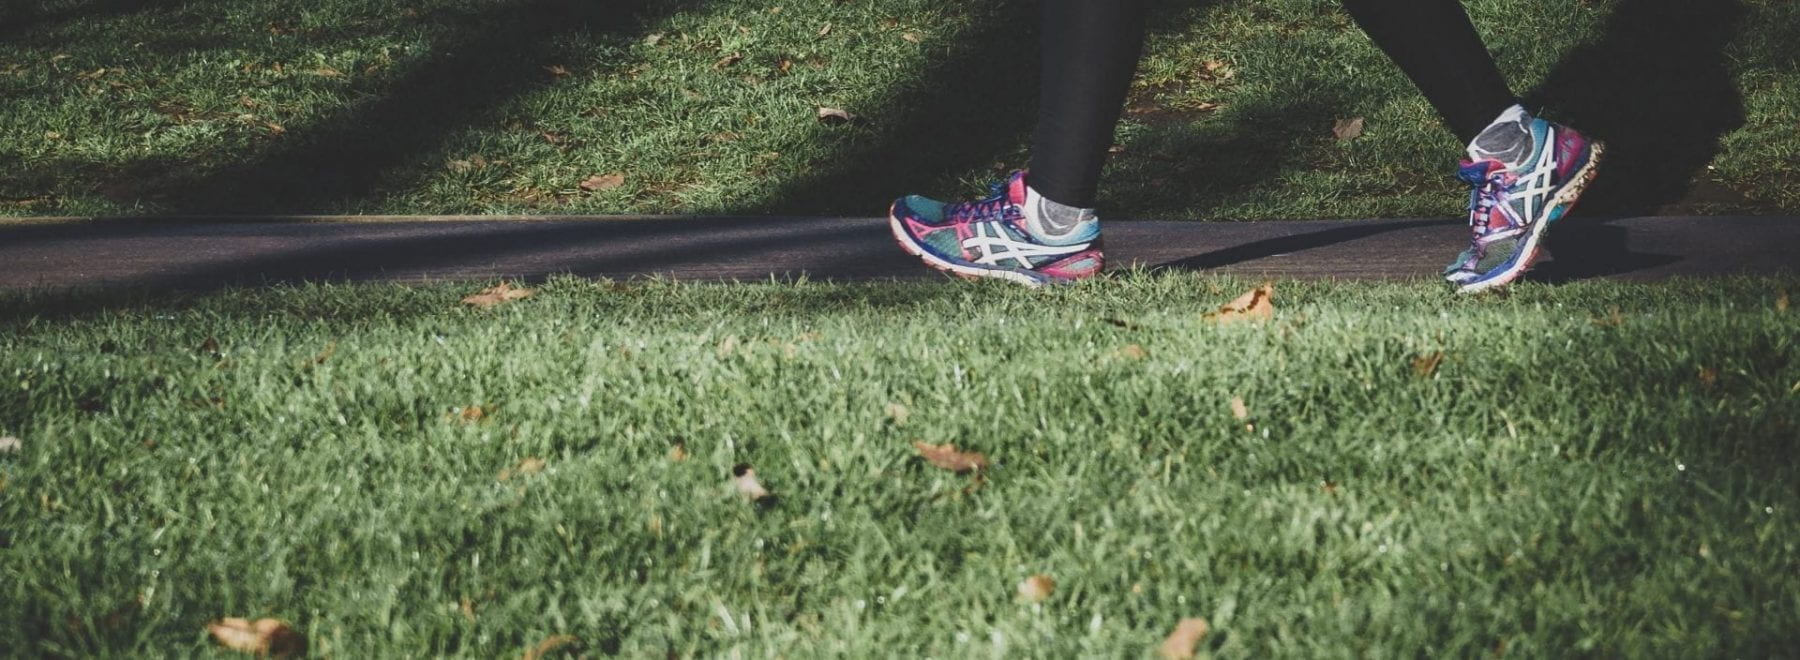 Someone wearing bright running shoes walks along a path with grass on either side